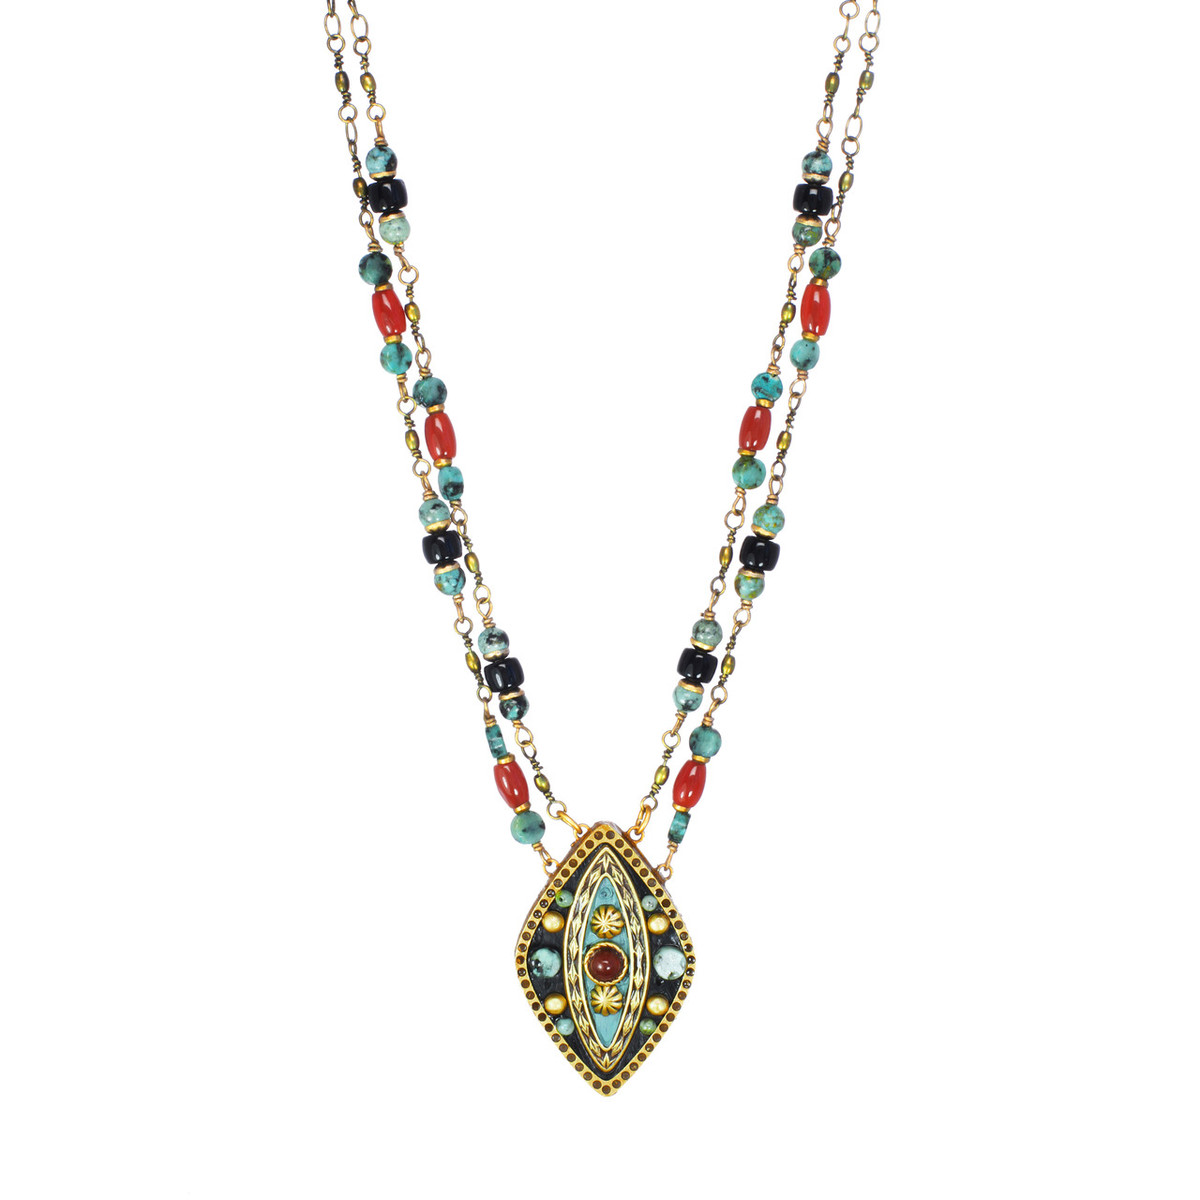 Michal Golan Jewelry Large Diamond Pendant Teal Necklace